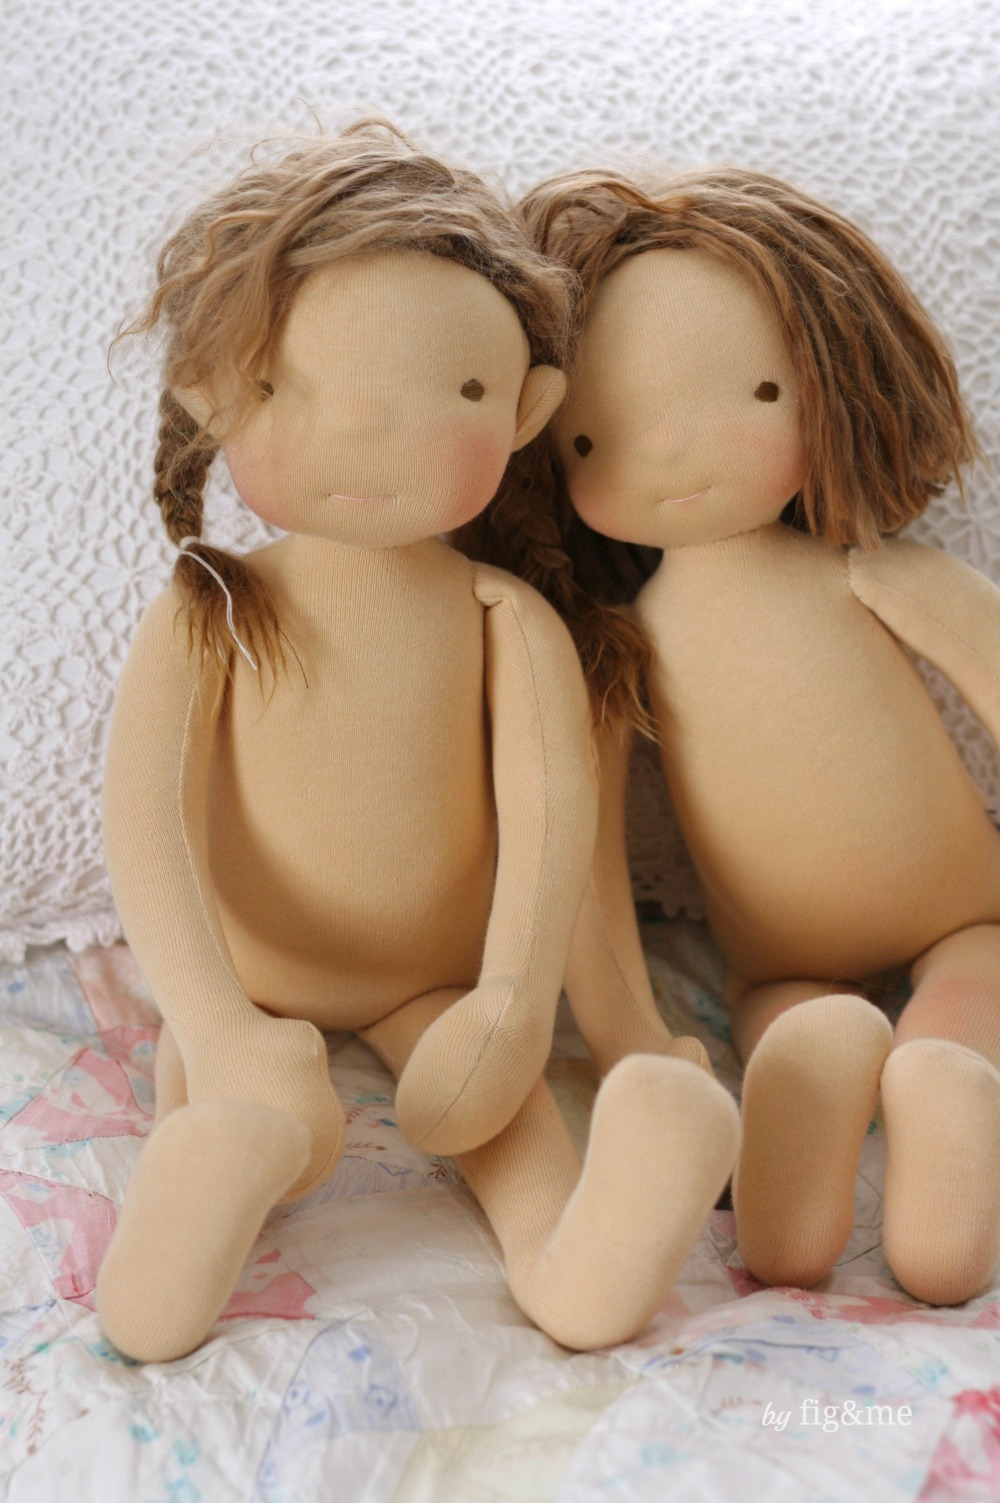 Figlette custom cloth dolls, by Fig and me.